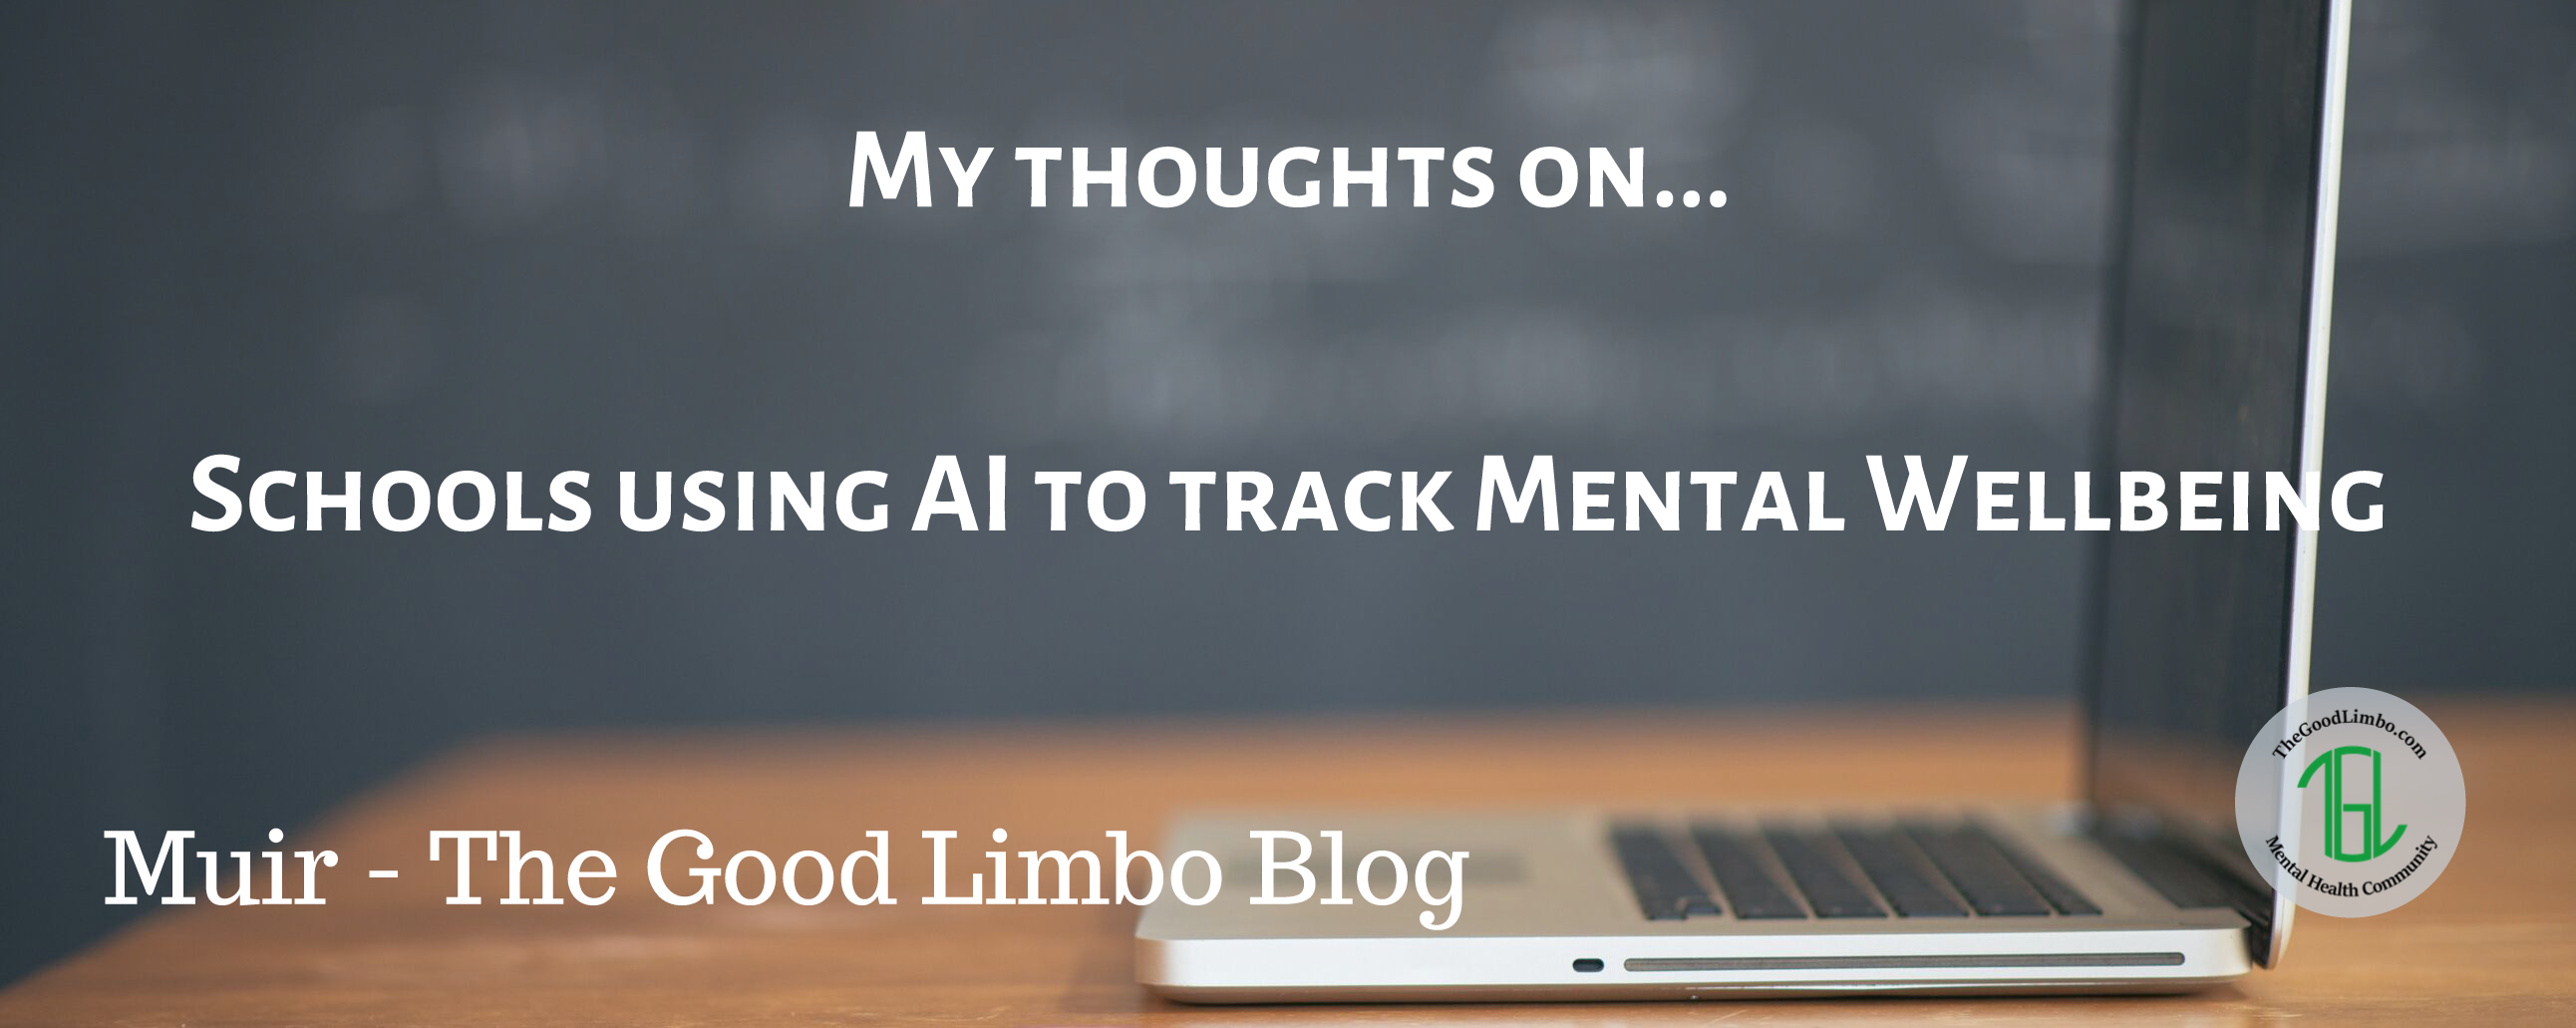 Schools using AI to track mental wellbeing blog image